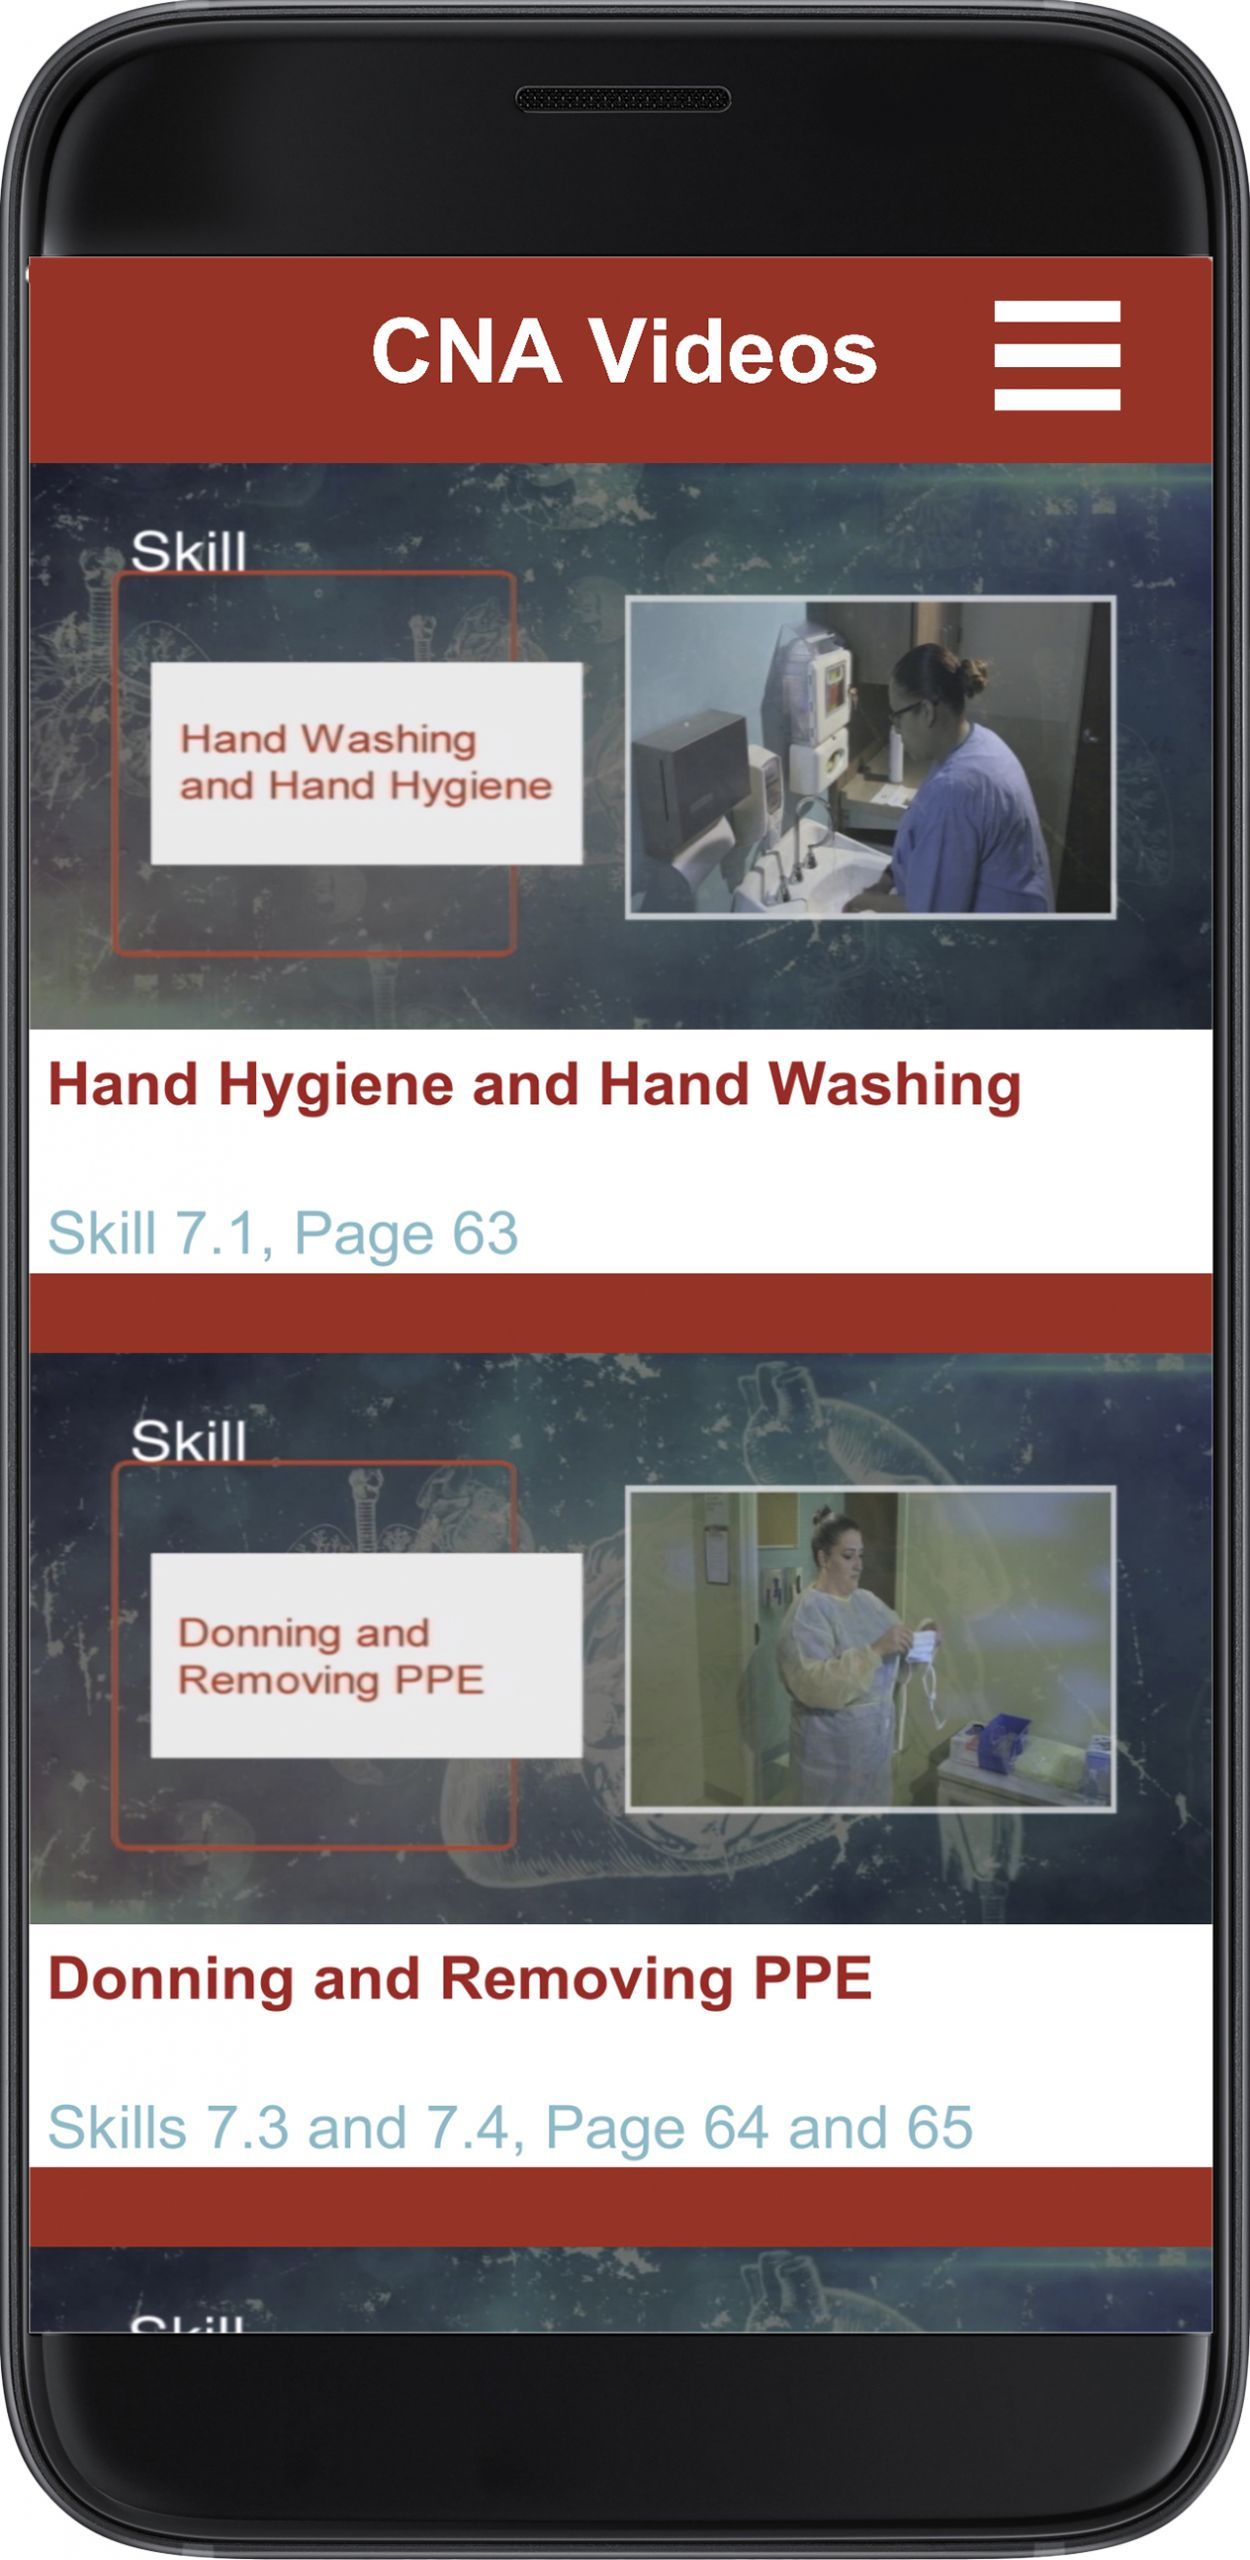 August Learning Solutions app image